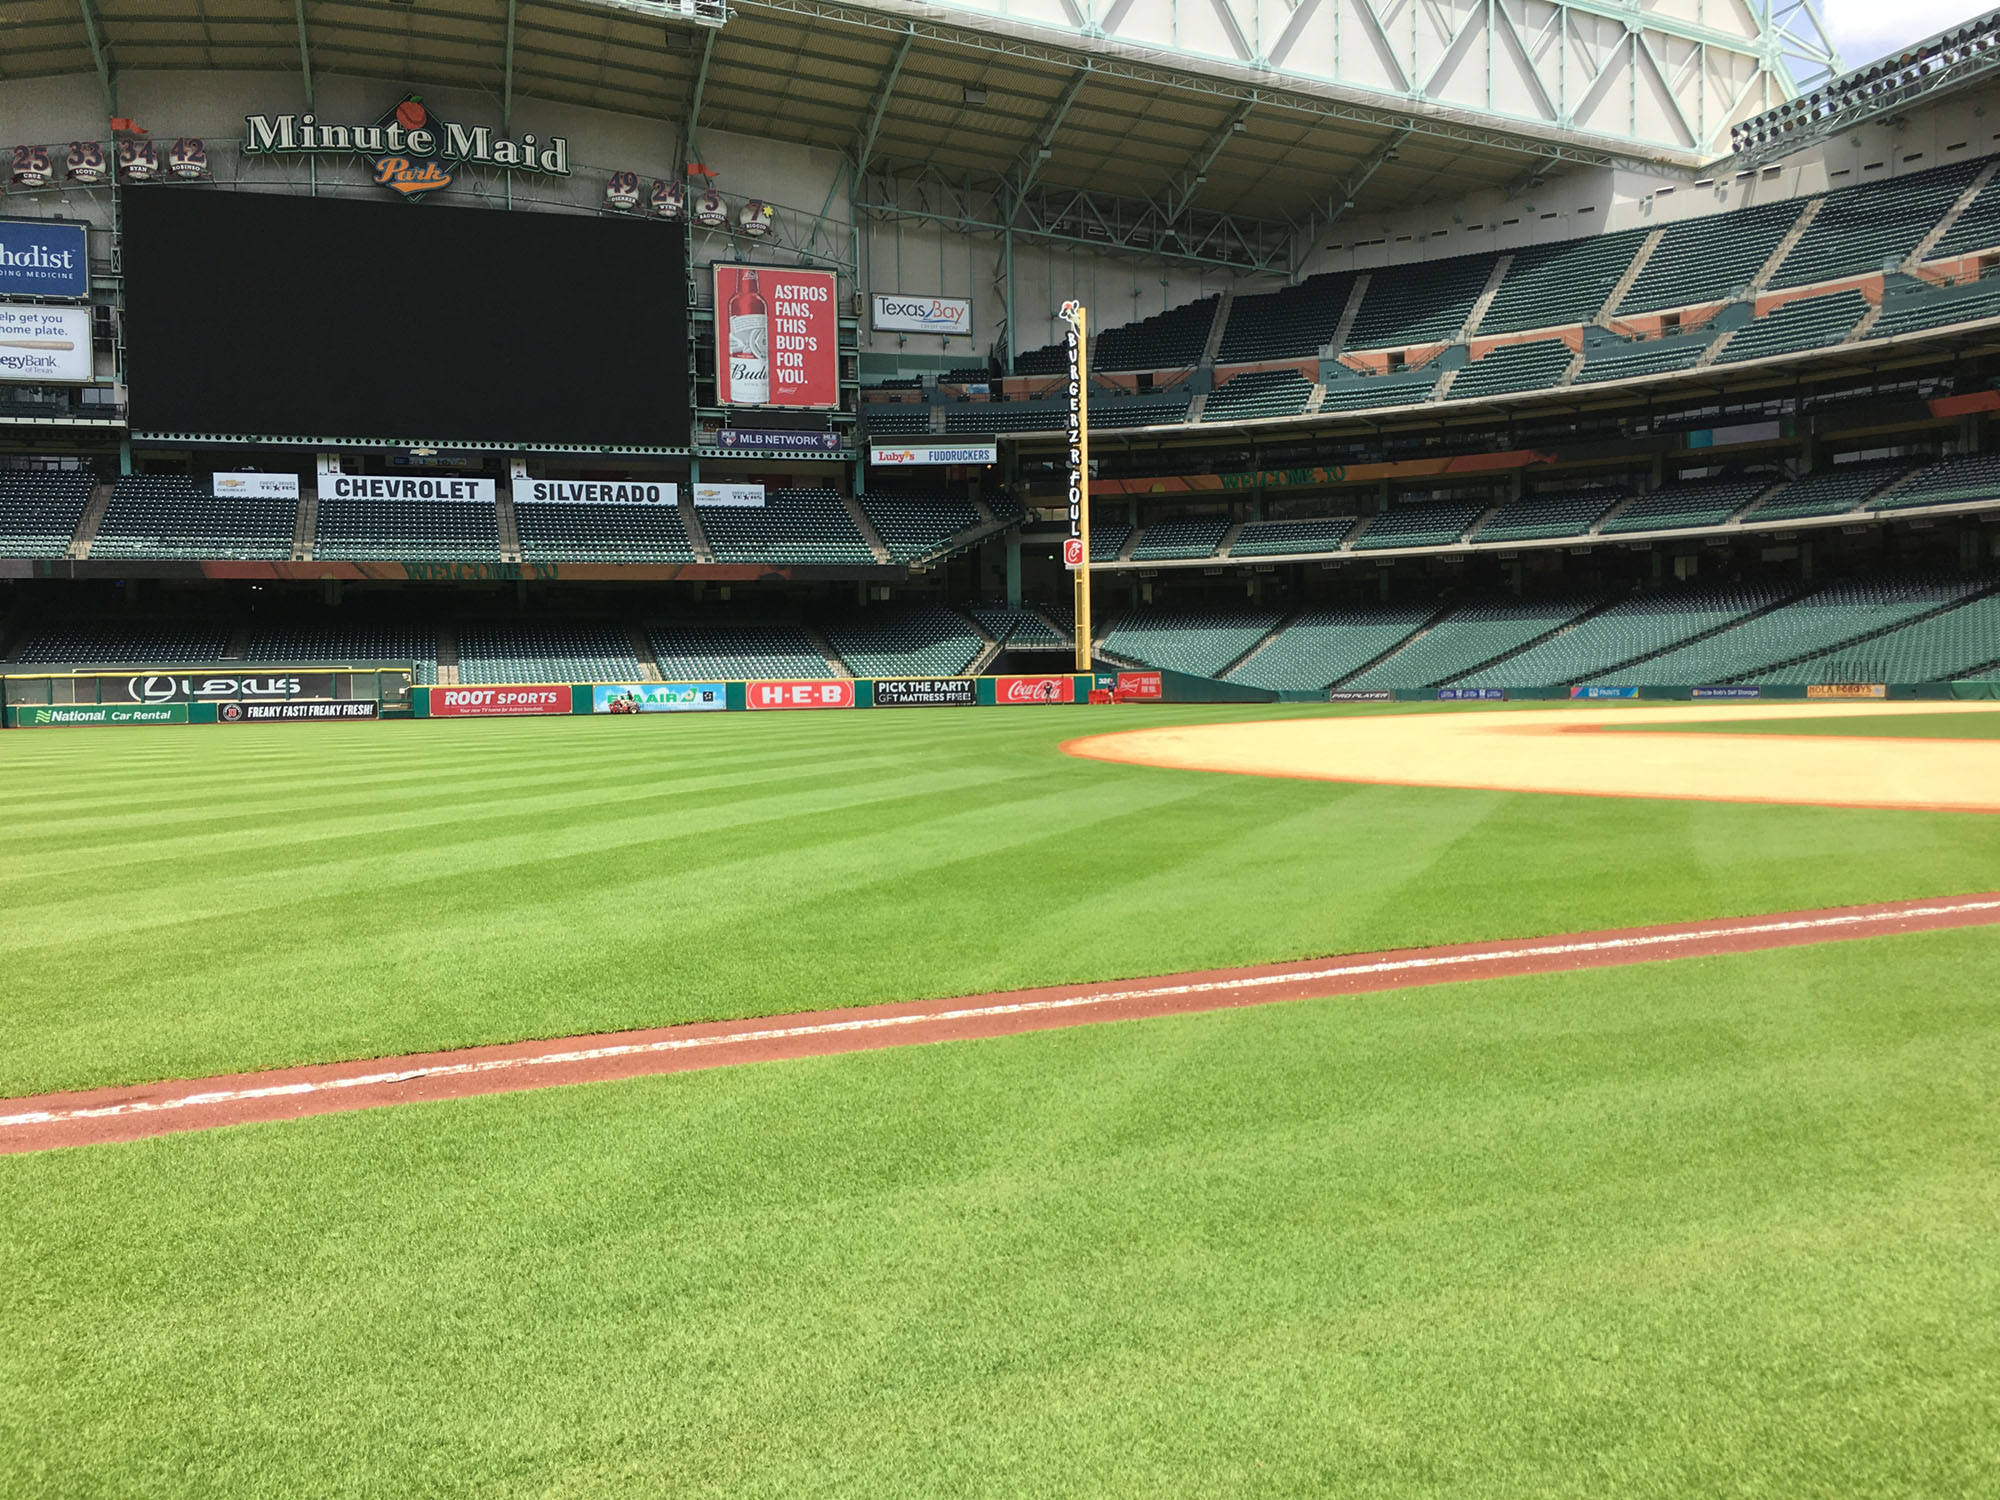 HALFTIME: On-field tour of Minute Maid Park, a first for me.